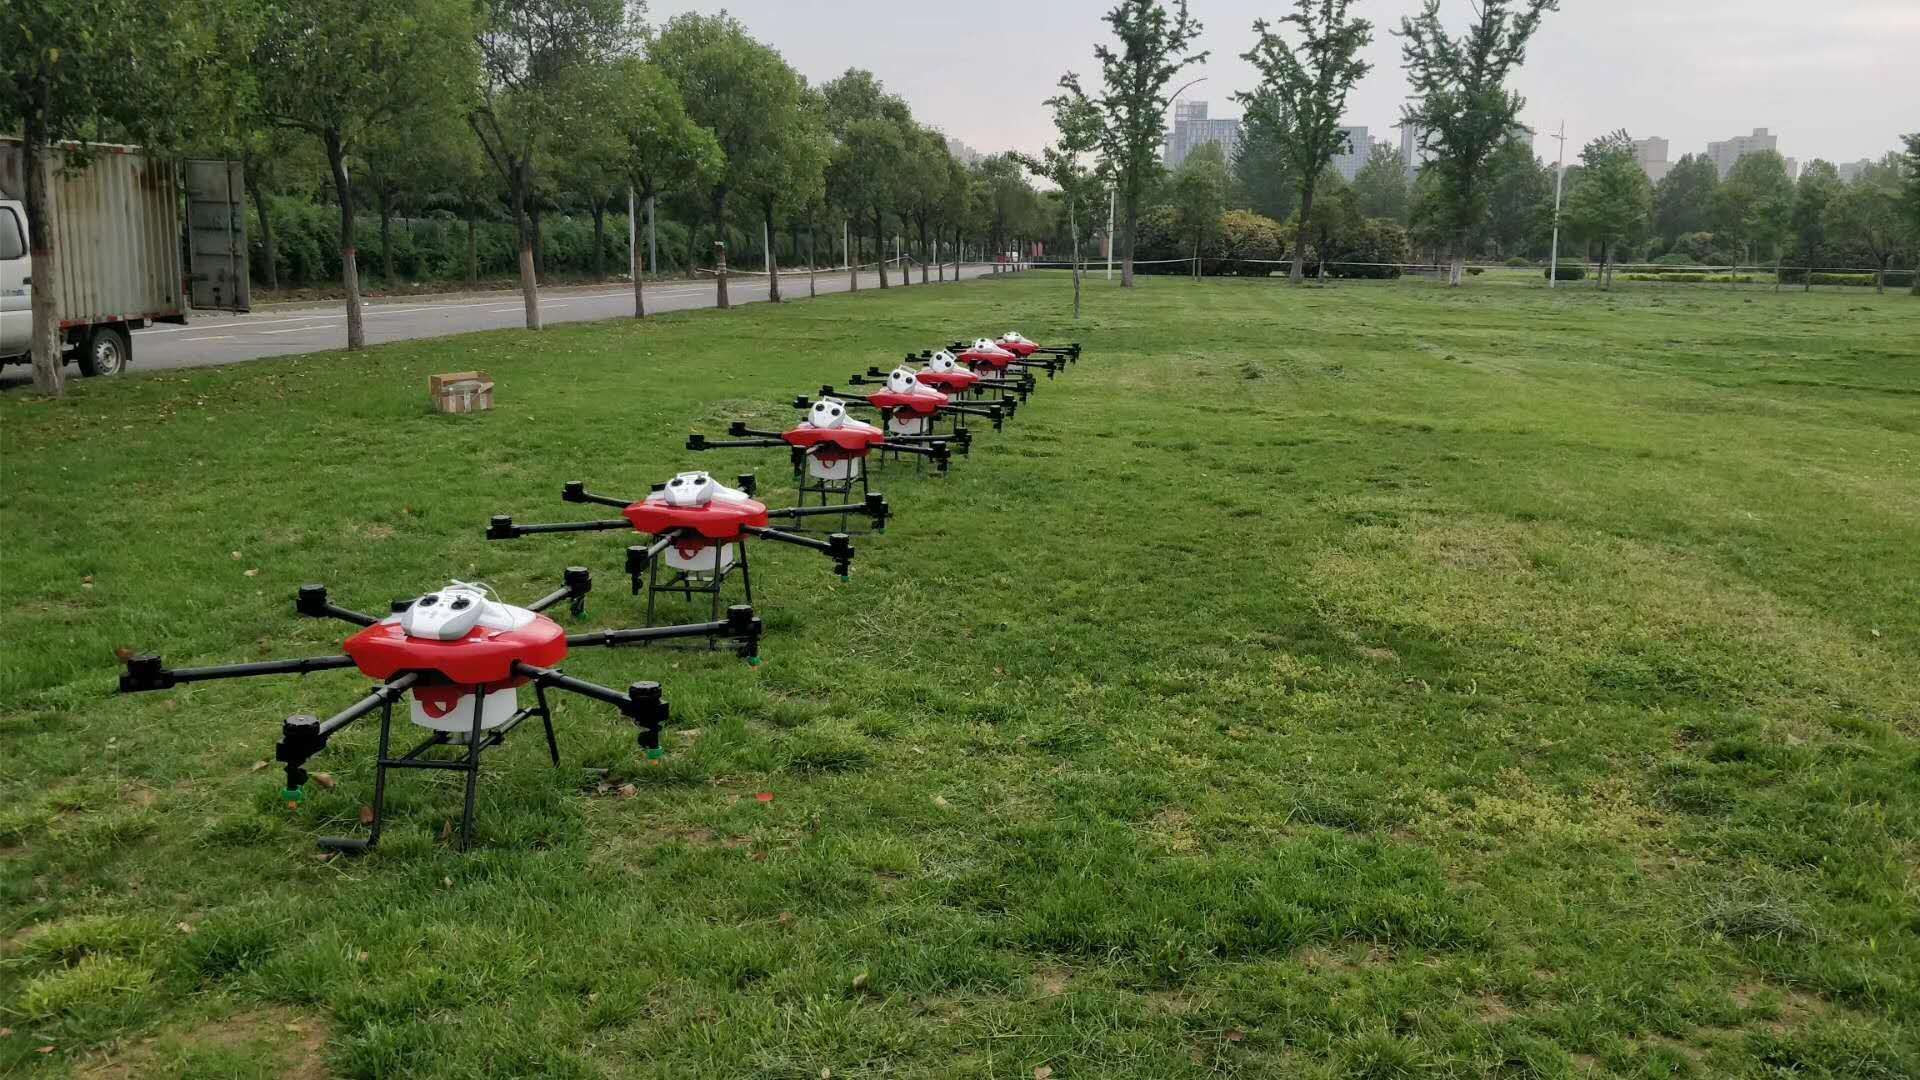 Agriculture spraying drones are more popular with